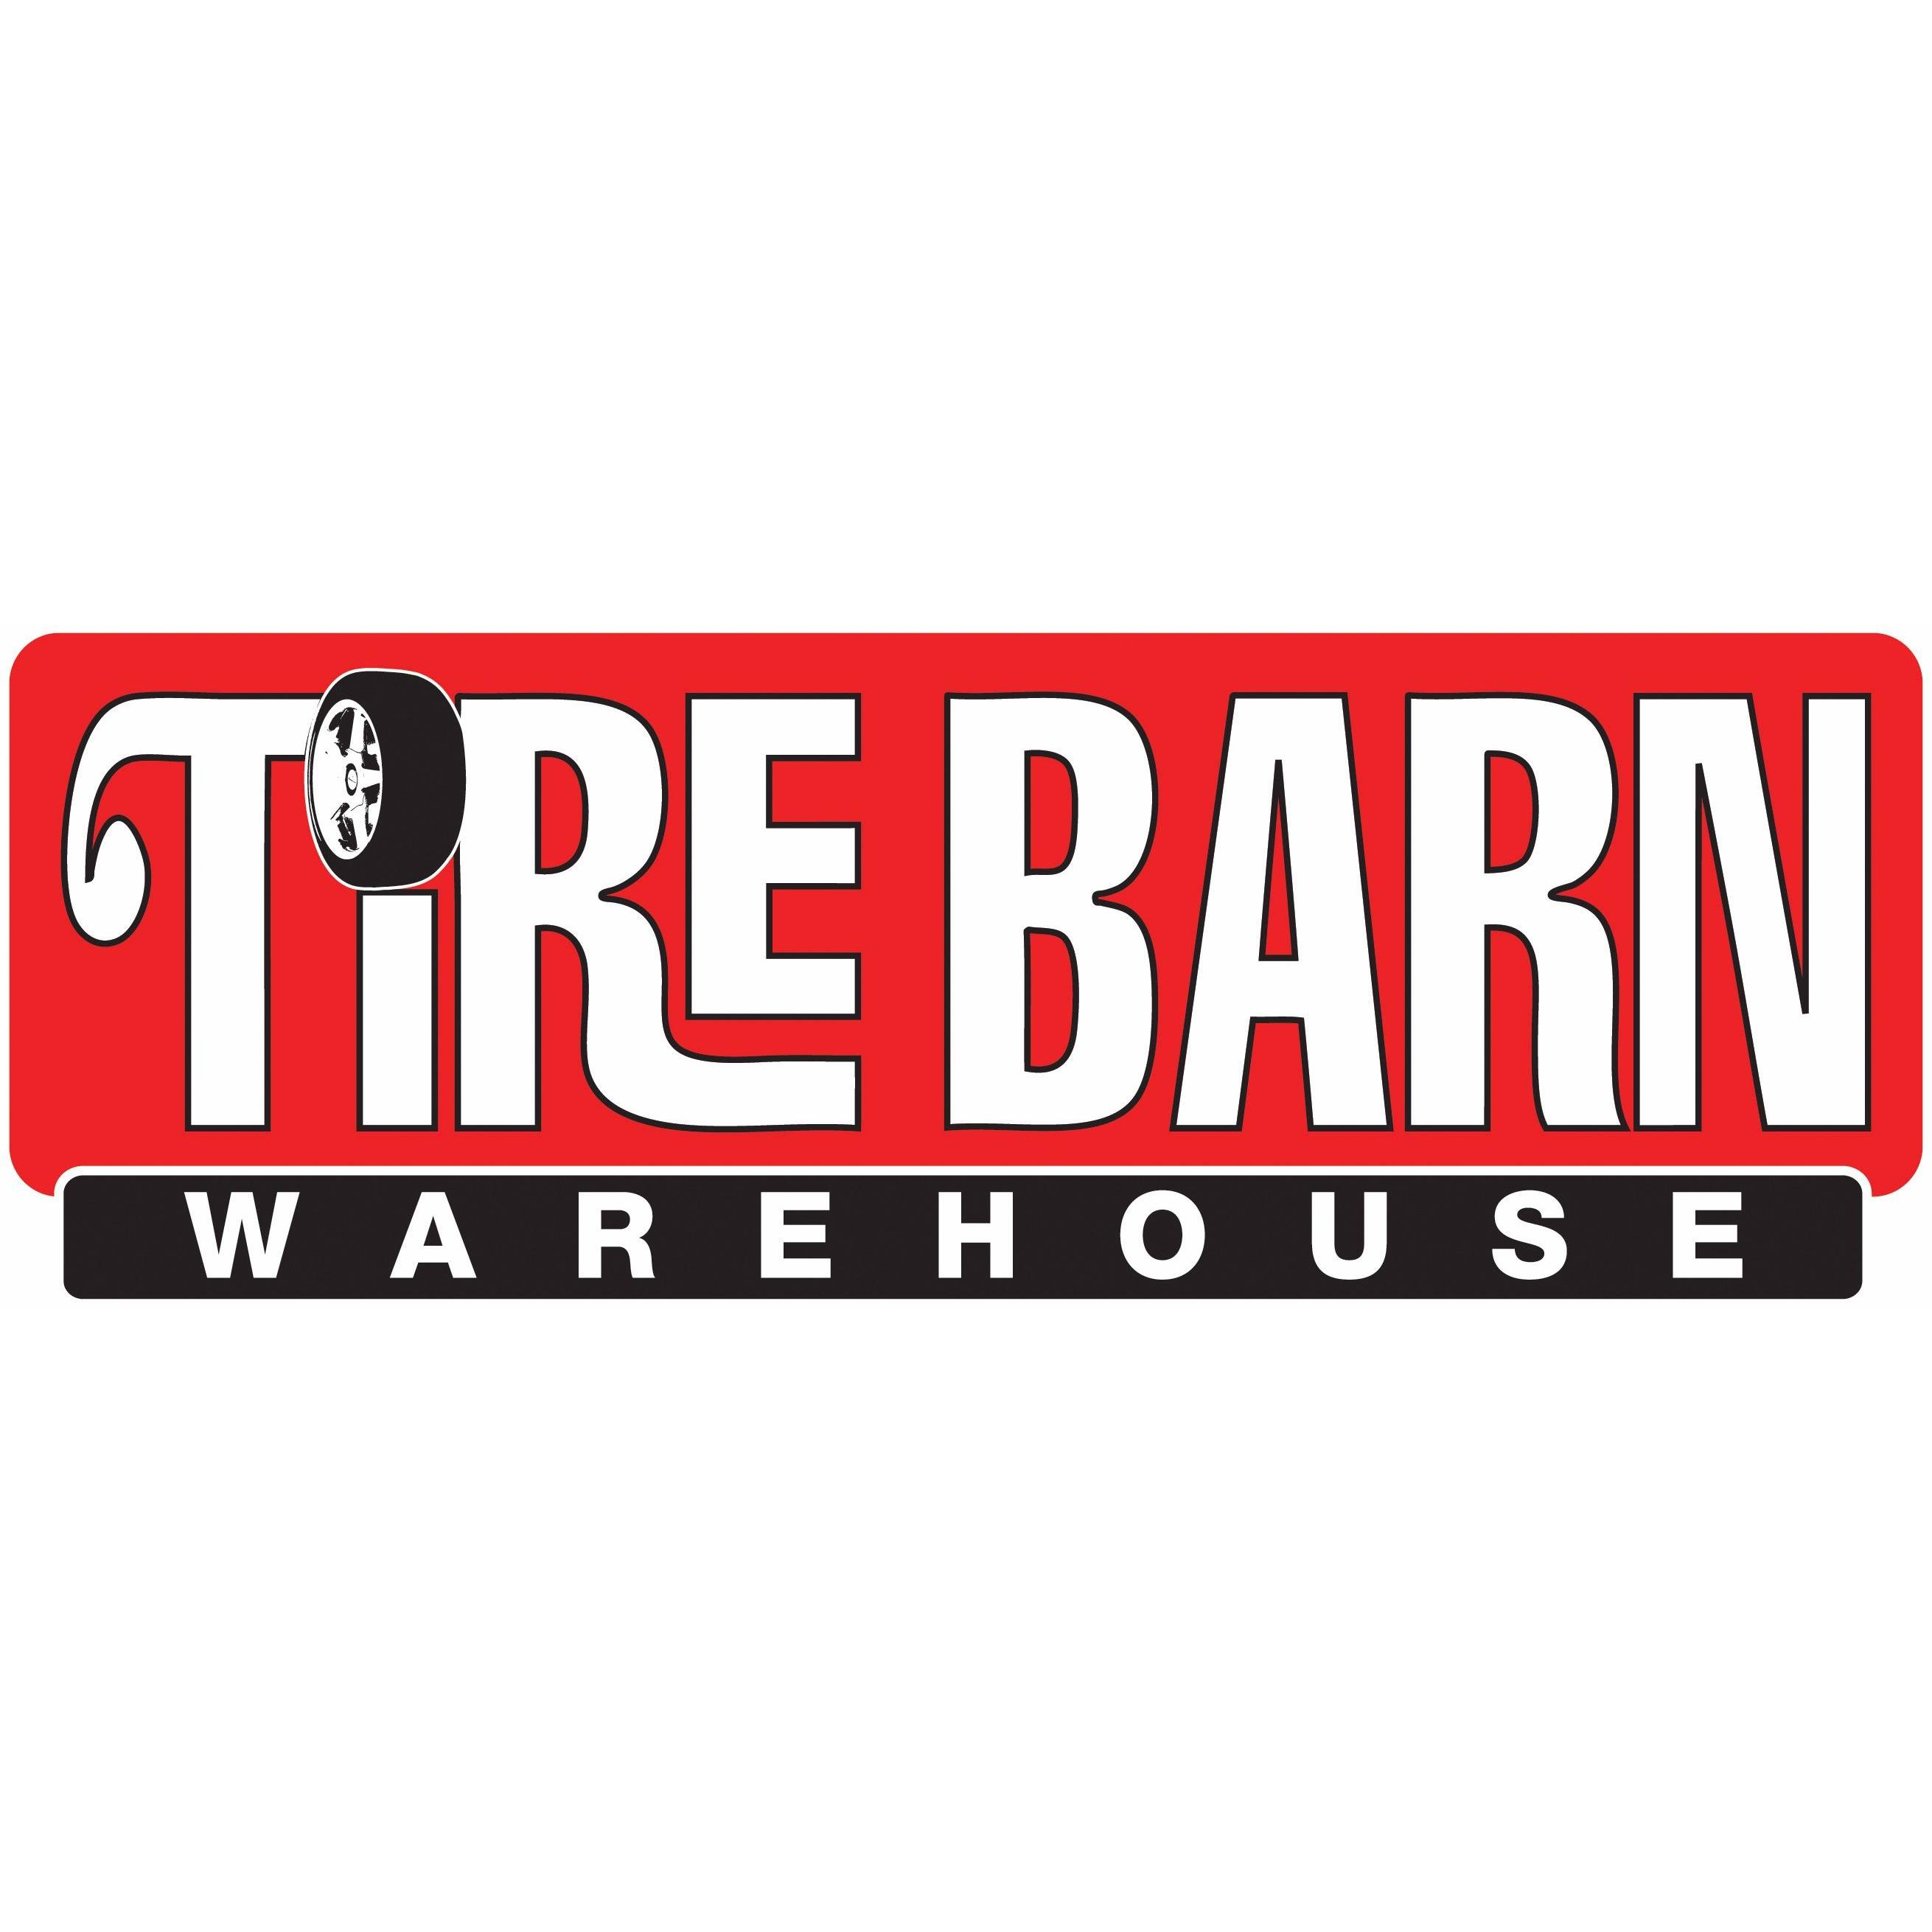 Tire Barn image 1